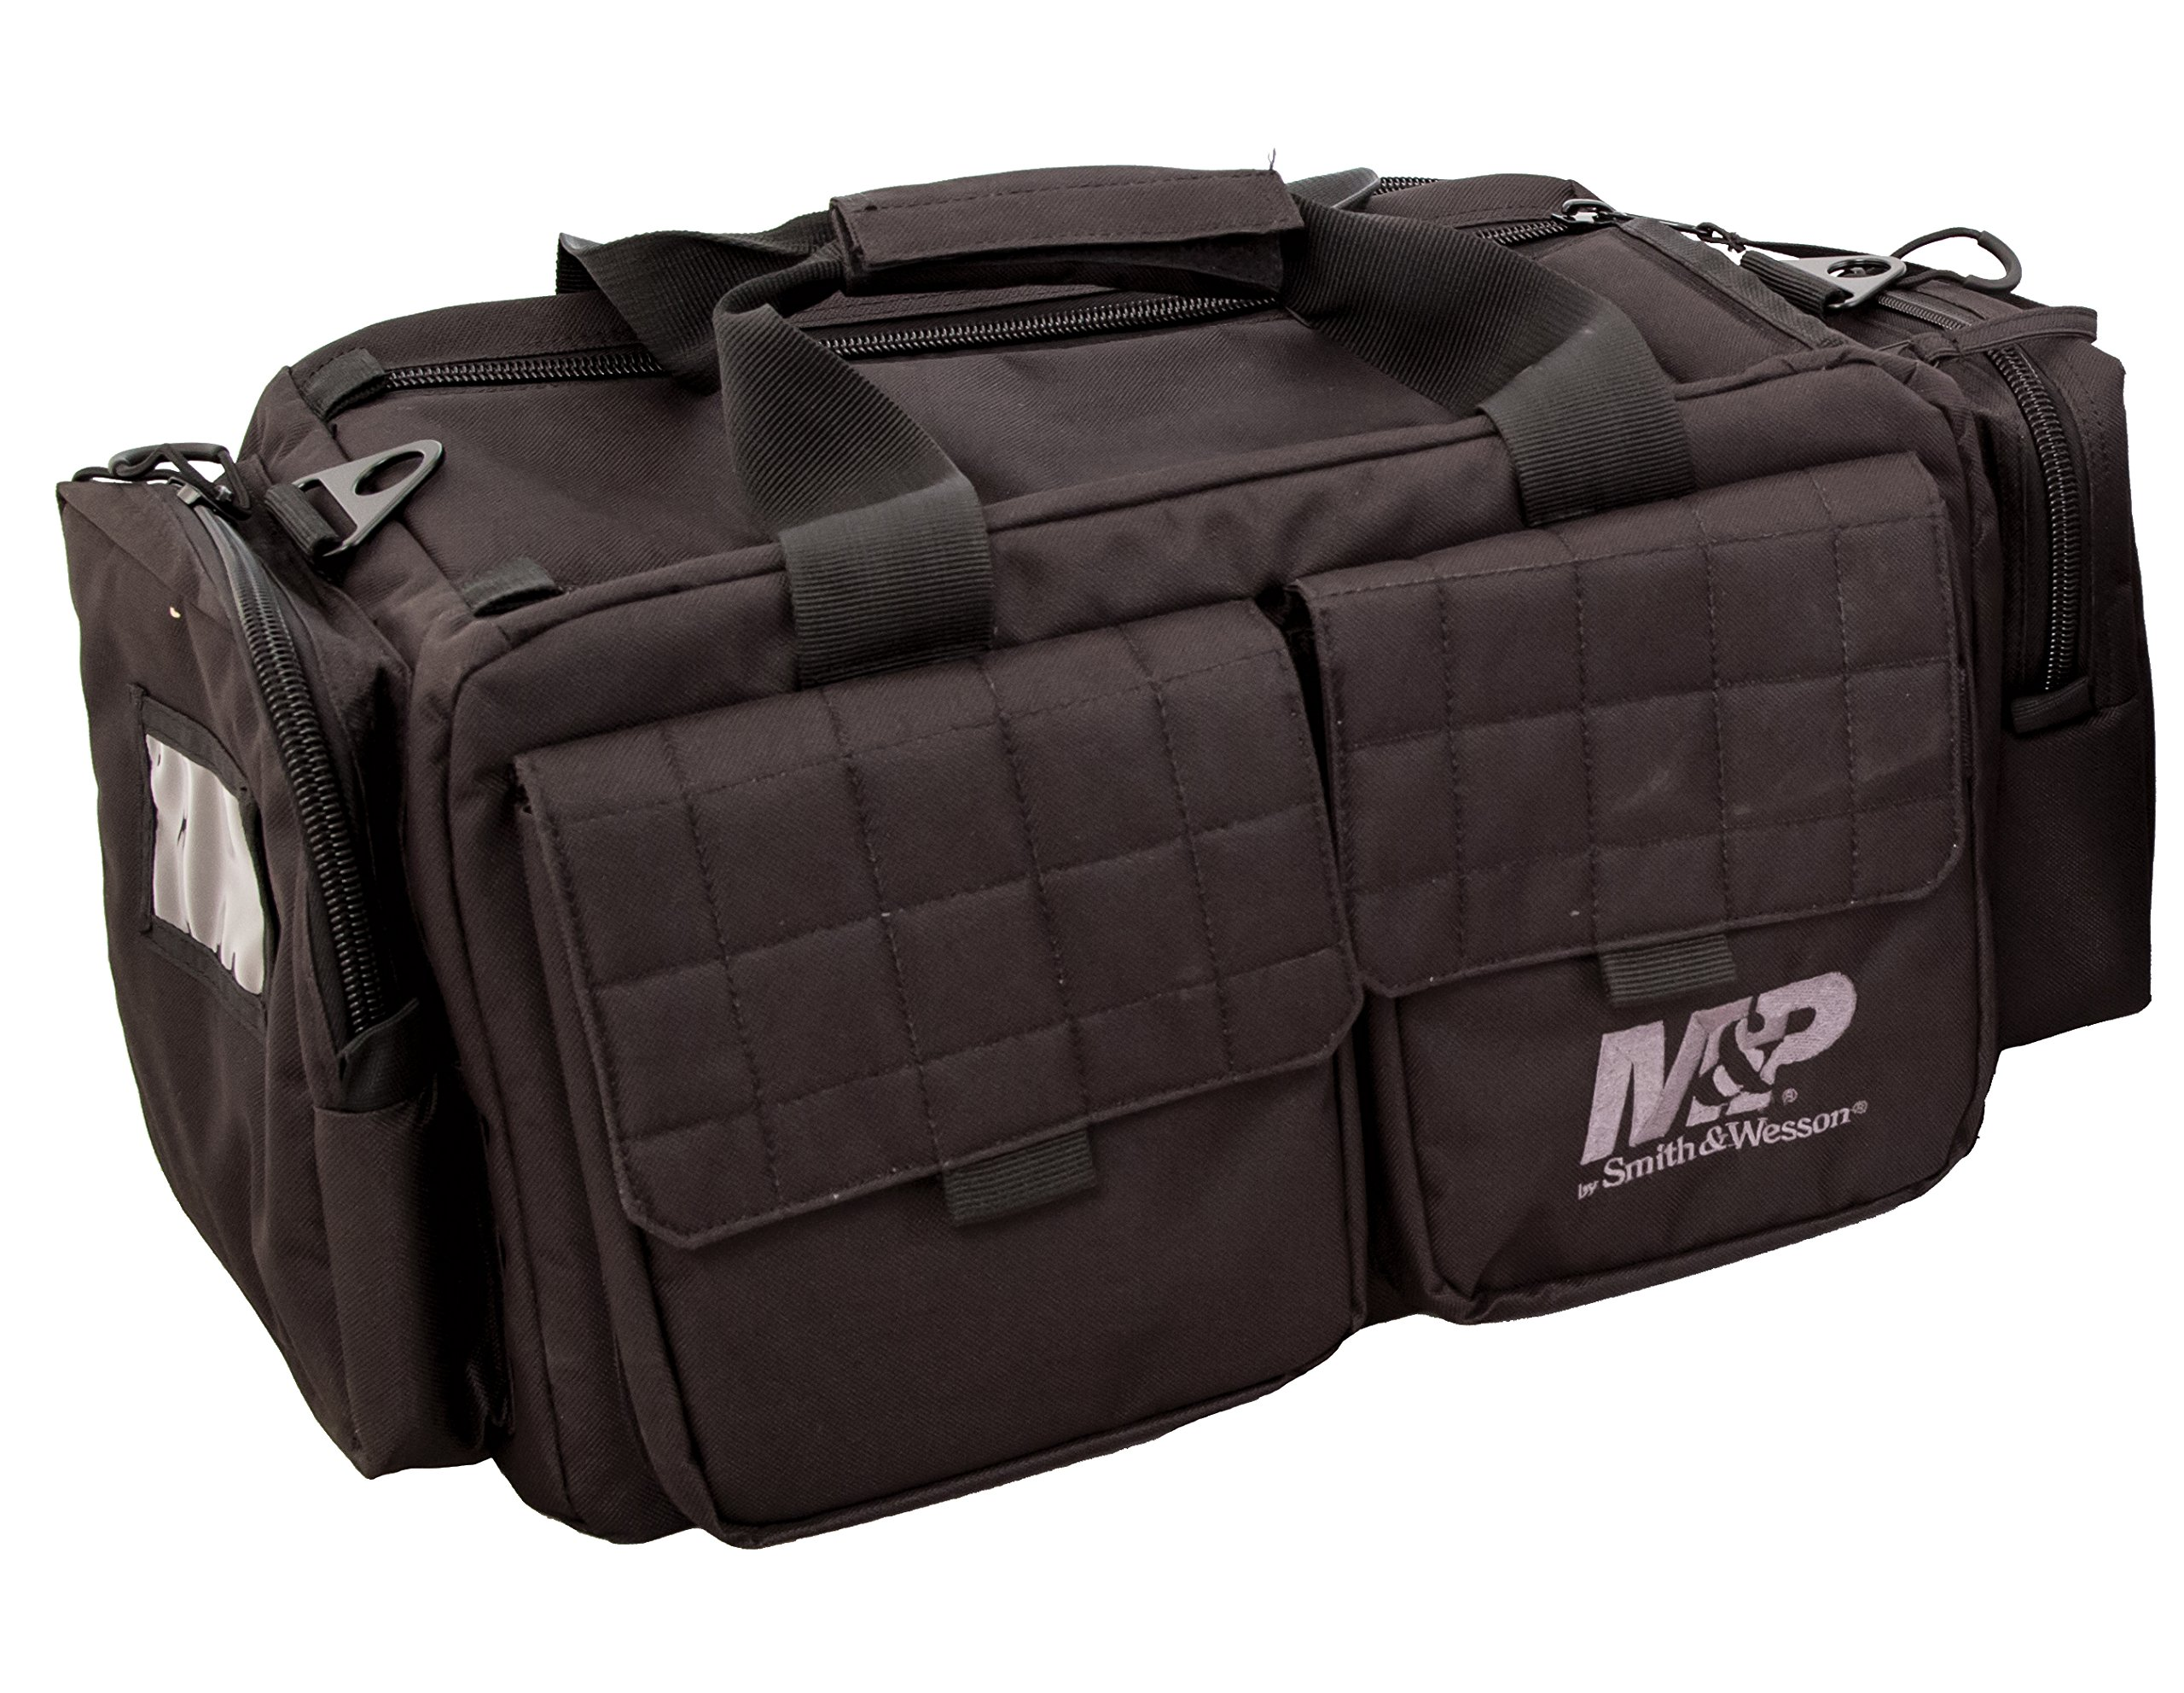 Smith & Wesson M&P Officer Tactical Range Bag with Weather Resistant Material for Shooting, Range, Storage and Transport by SMITH & WESSON